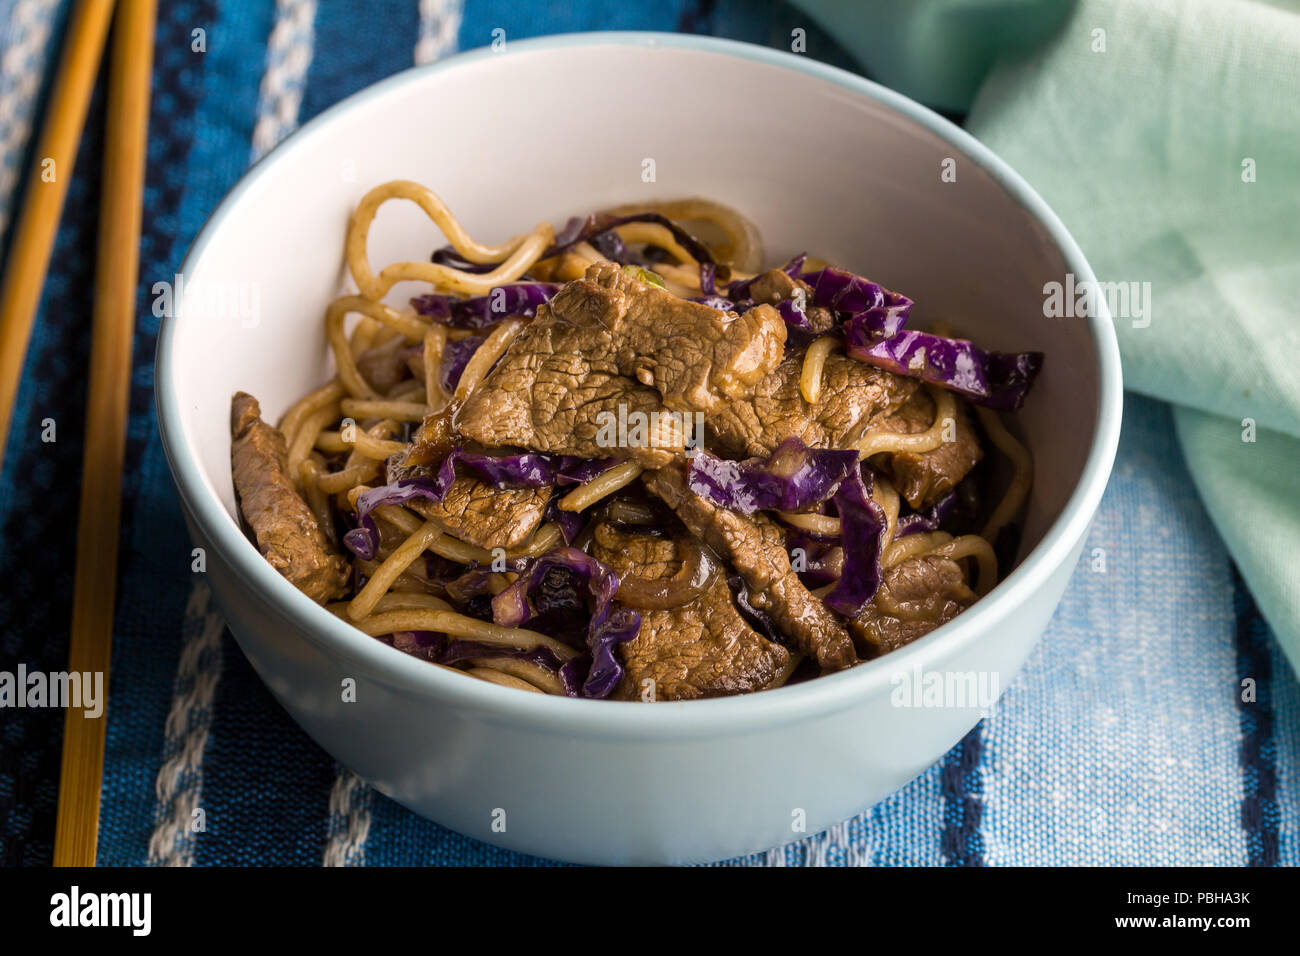 Steak, noodles and purple cabbage closeup in bowl with chopsticks - Noodle meal - Stock Image